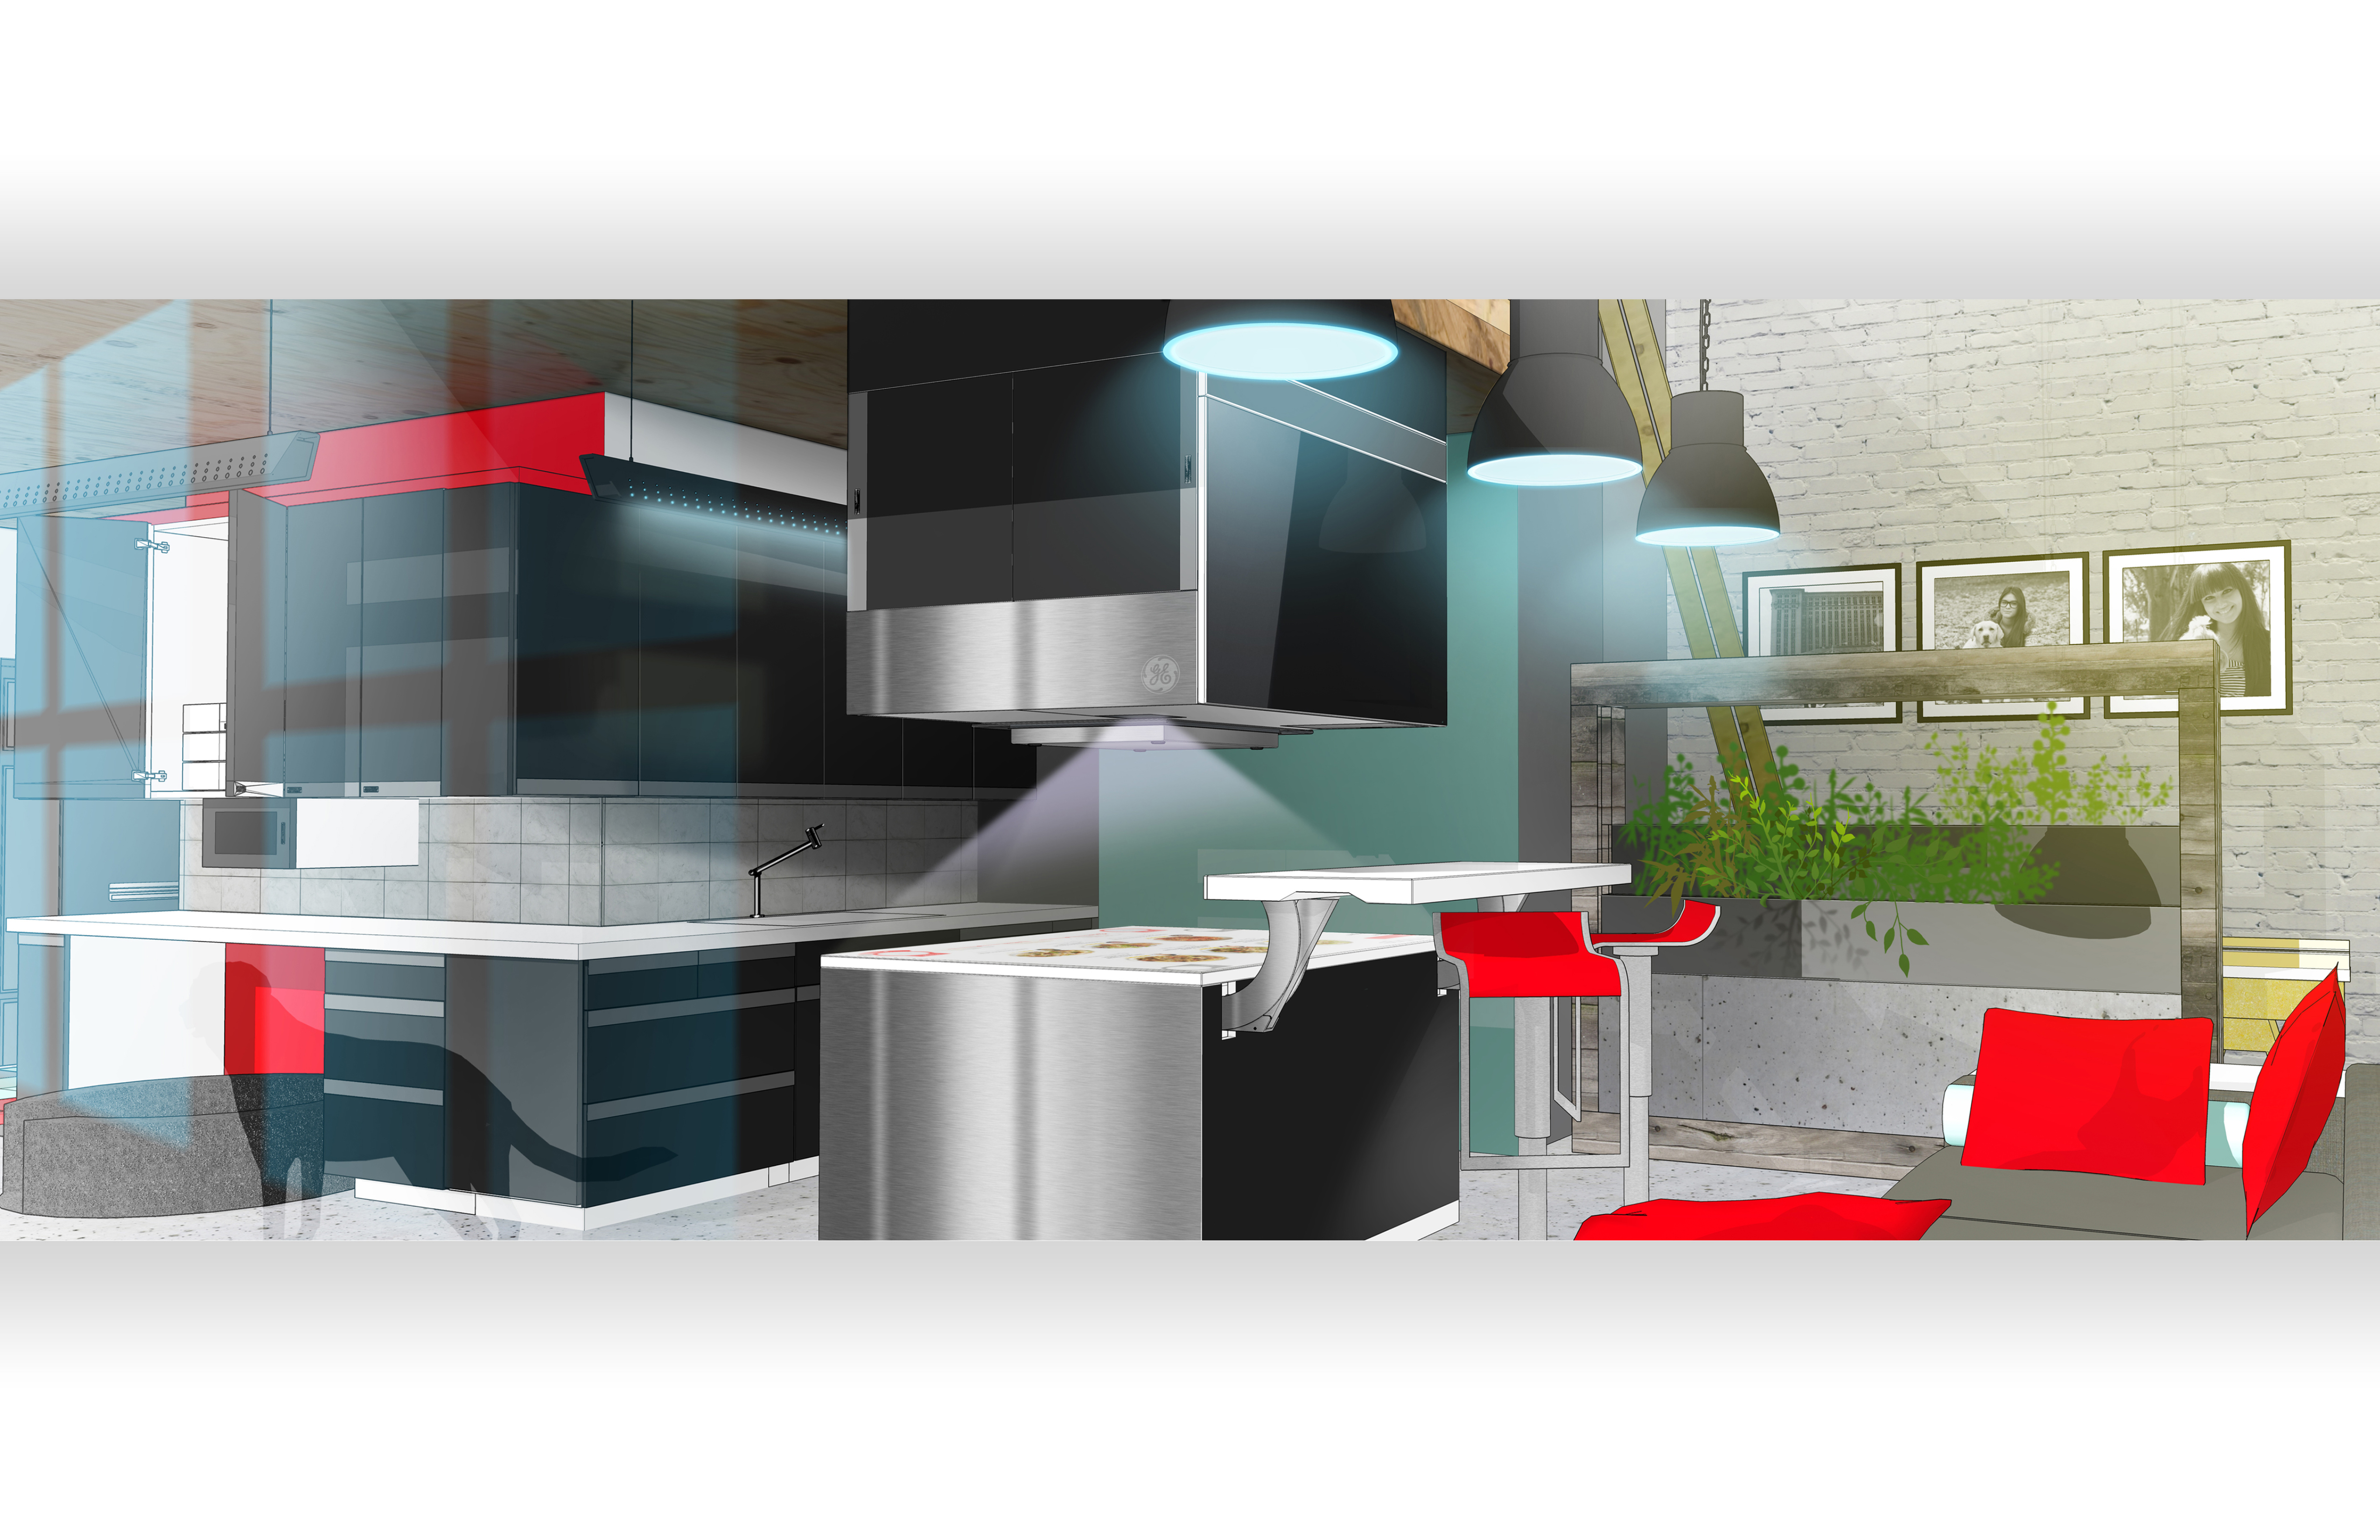 Uncategorized Kitchen Science Appliances what your kitchen will look like in 2050 ge appliances pressroom on the go with ease